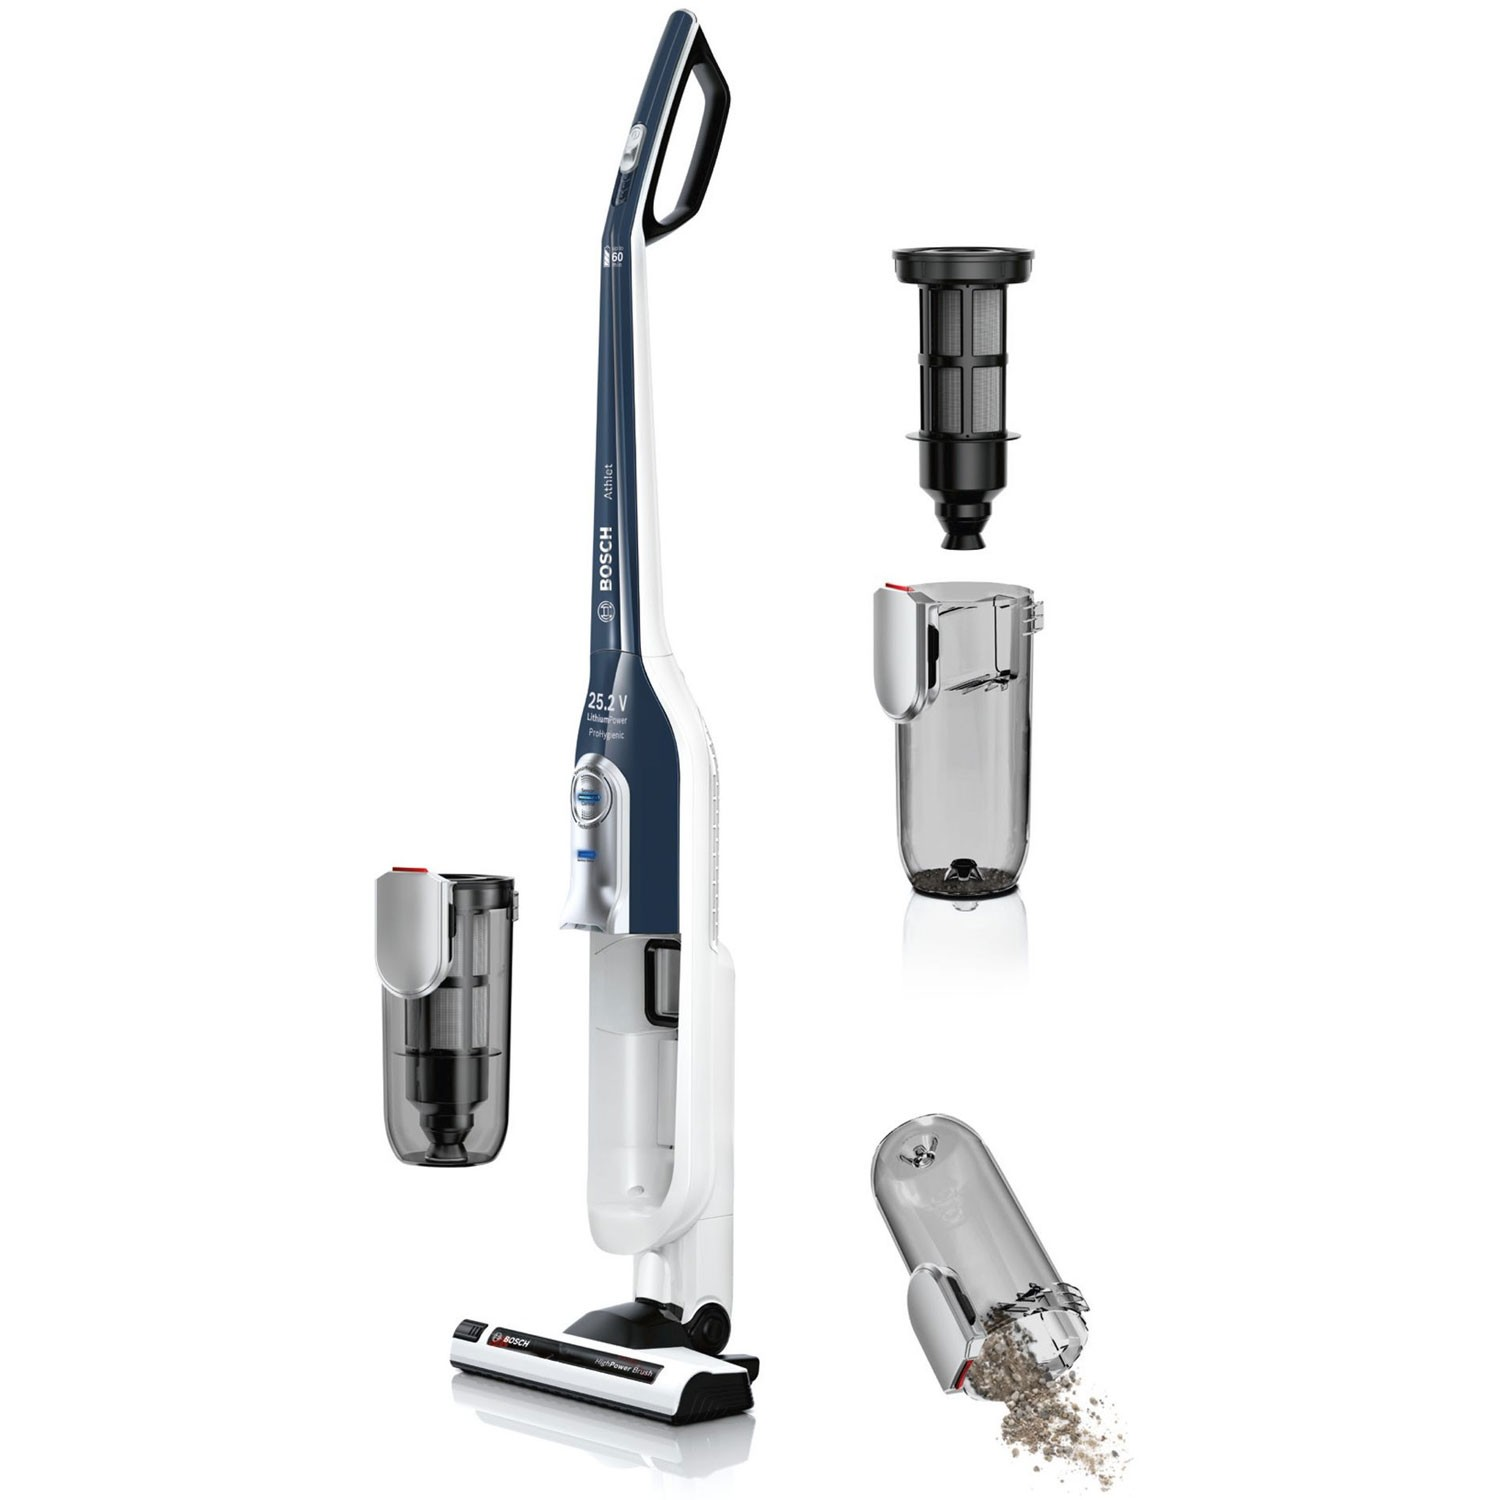 bosch cordless vacuum cleaner manual